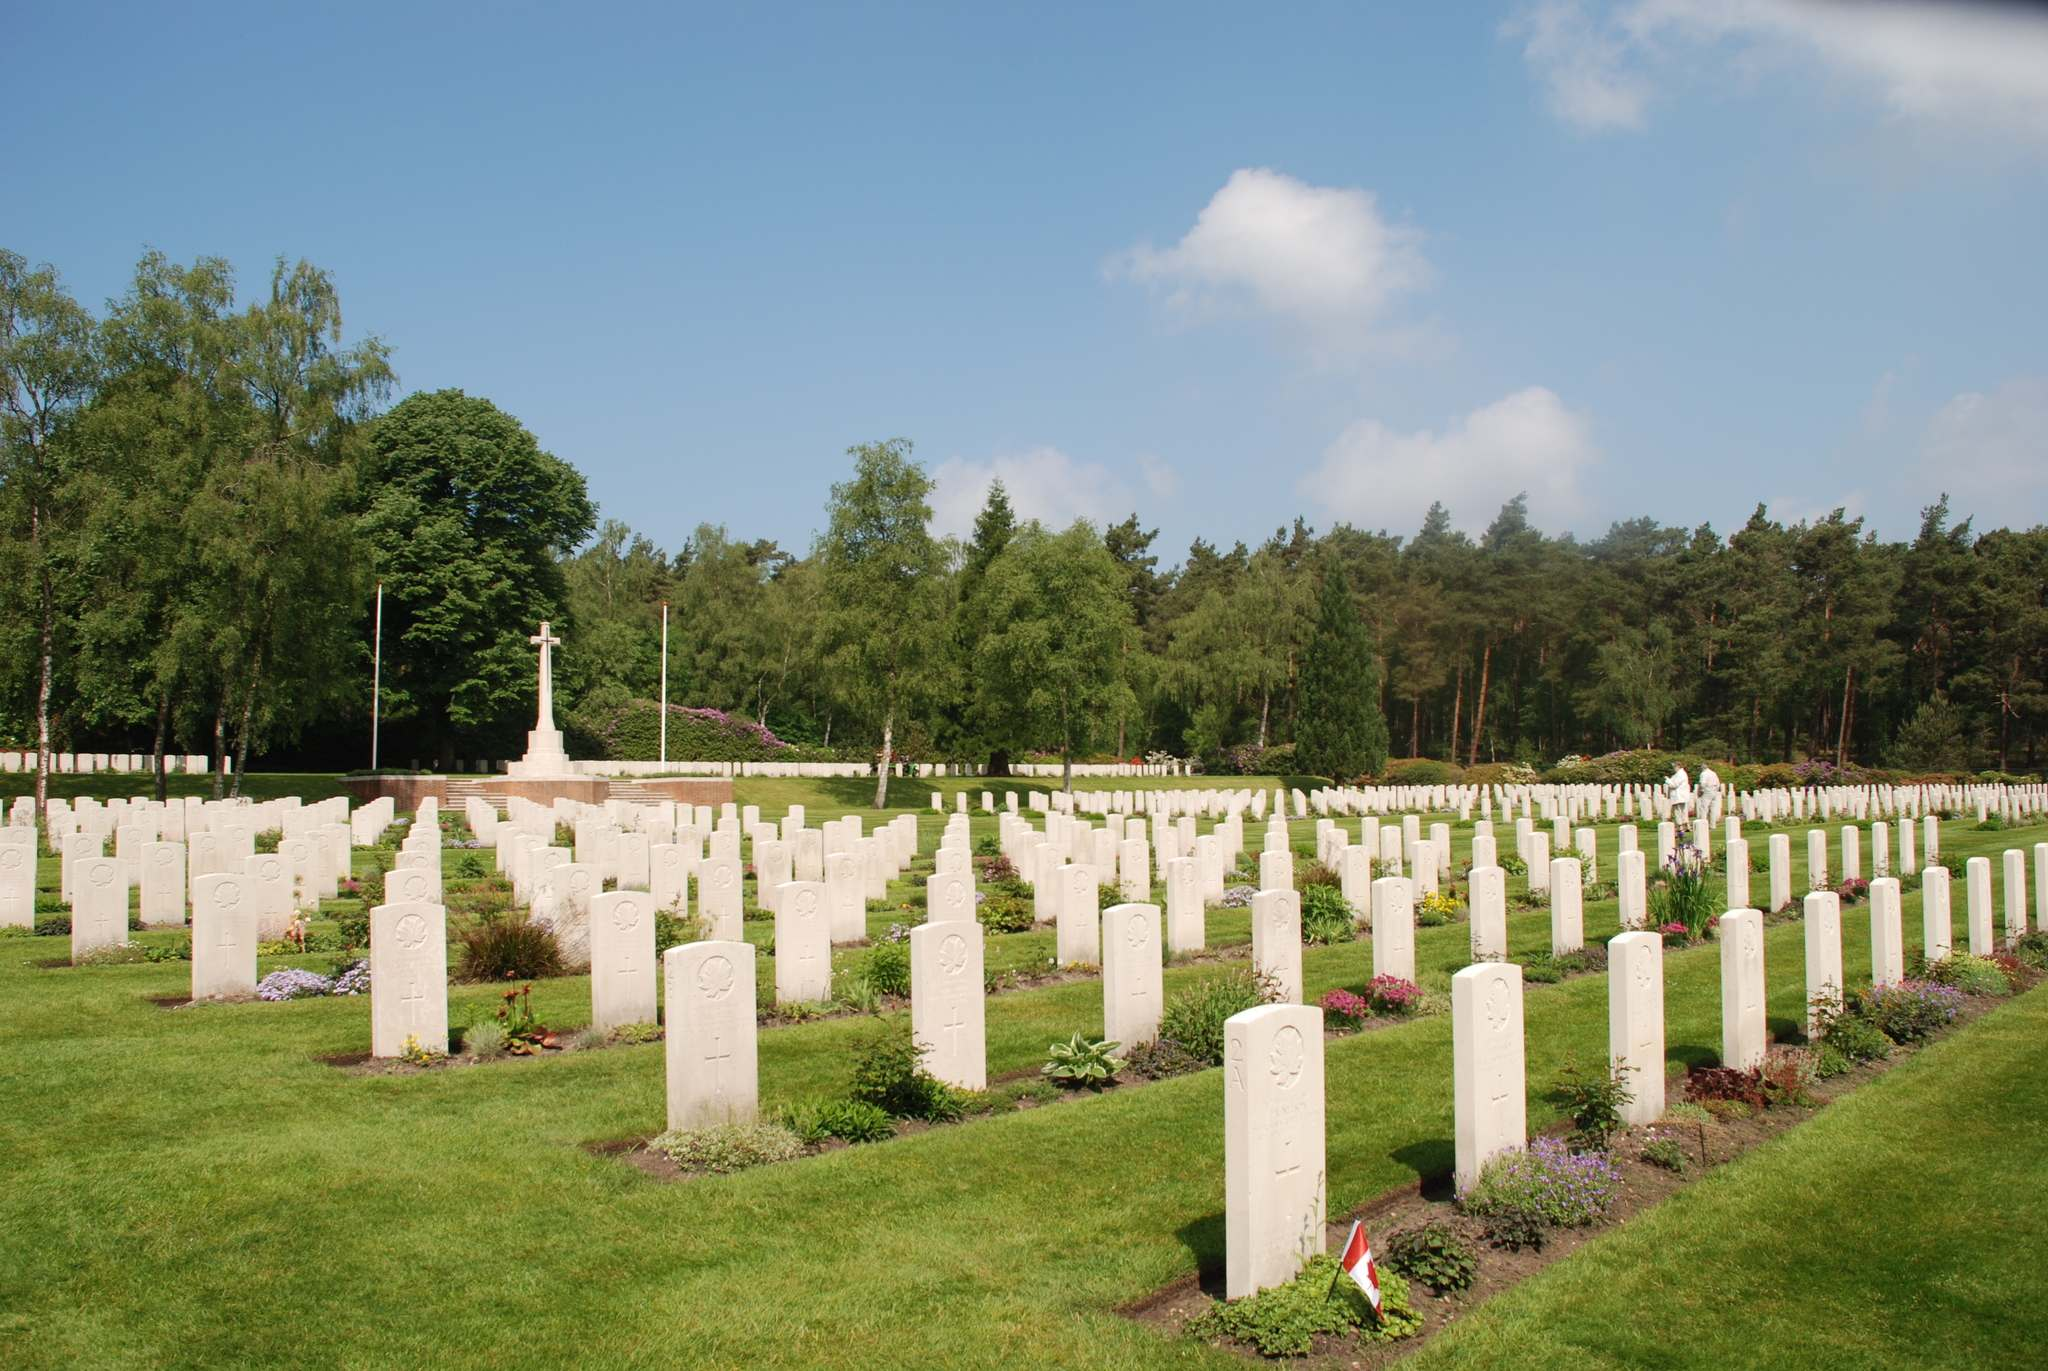 Ron Pradinuk / Winnipeg Free Press</p></p><p>The Holten Cemetery is kept in immaculate condition managed by the Commonwealth War Graves Commission.</p>